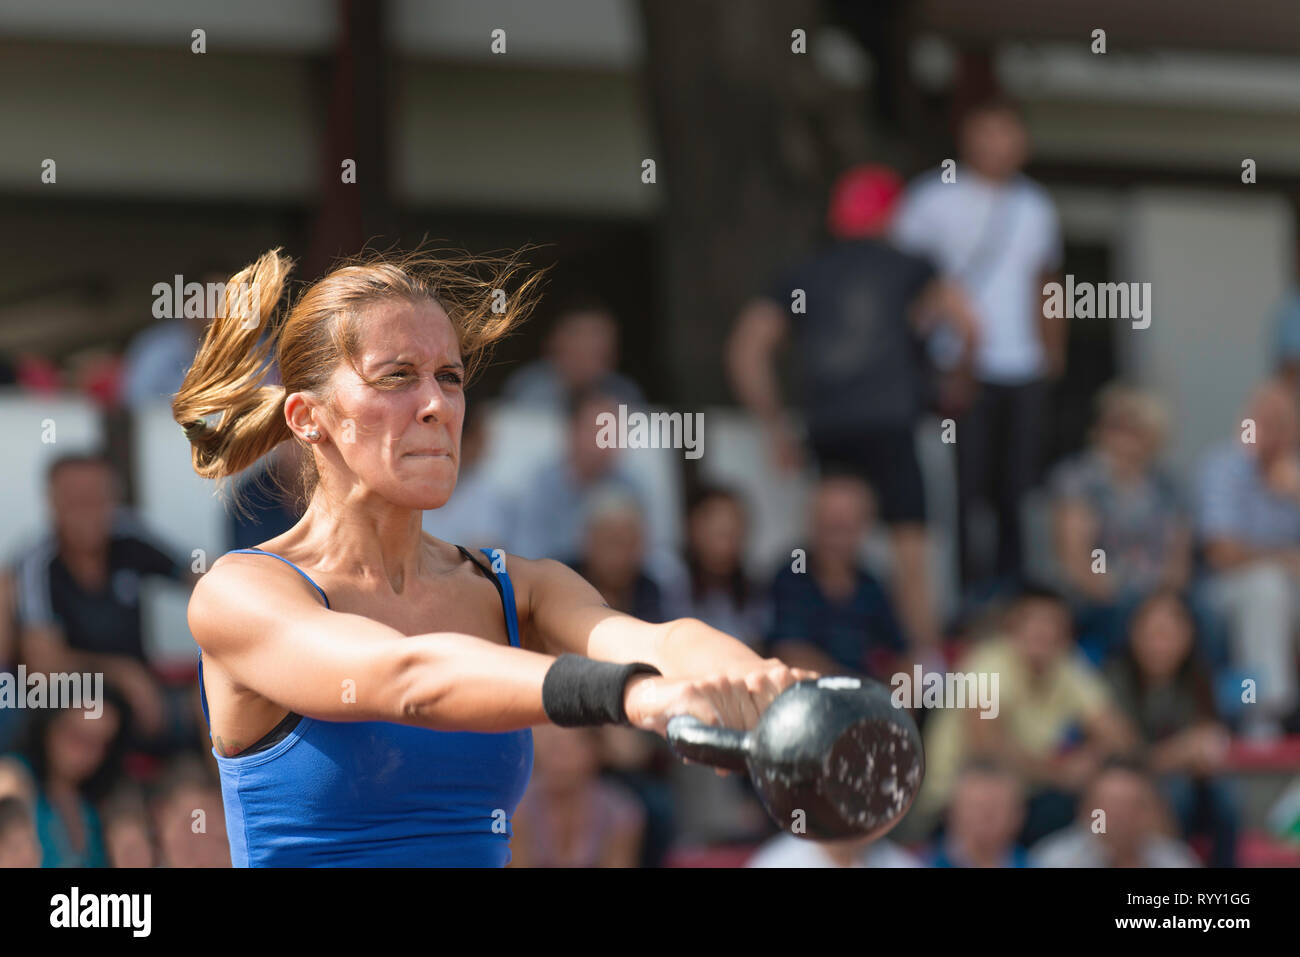 Kettlebell swing competition. - Stock Image